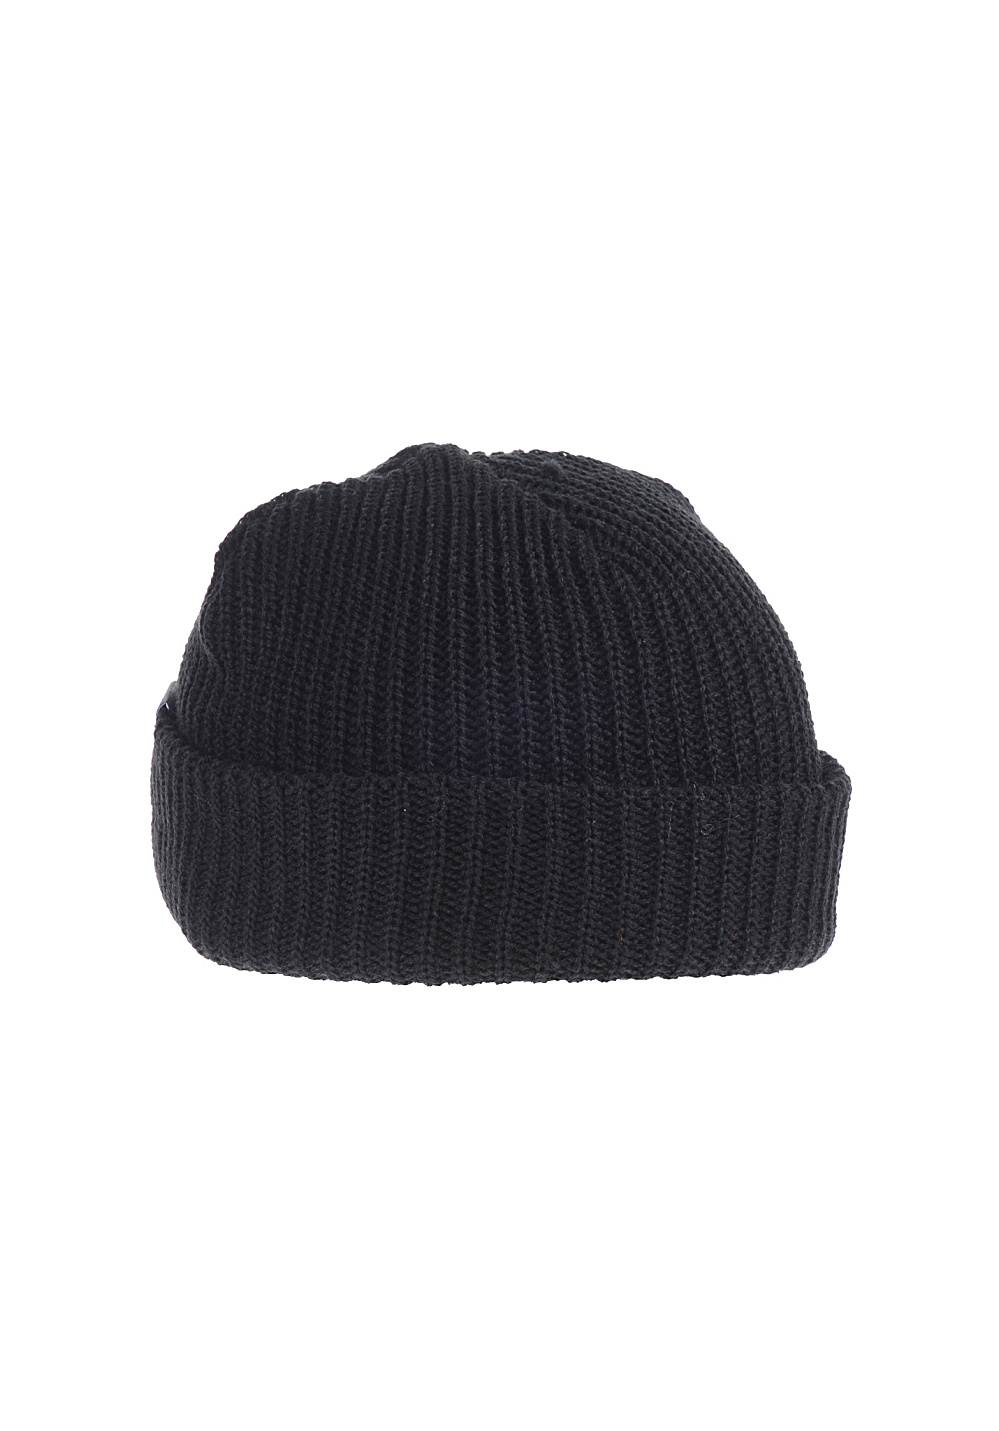 5776d95ecbbe0 HUF Usual - Beanie for Men - Black - Planet Sports